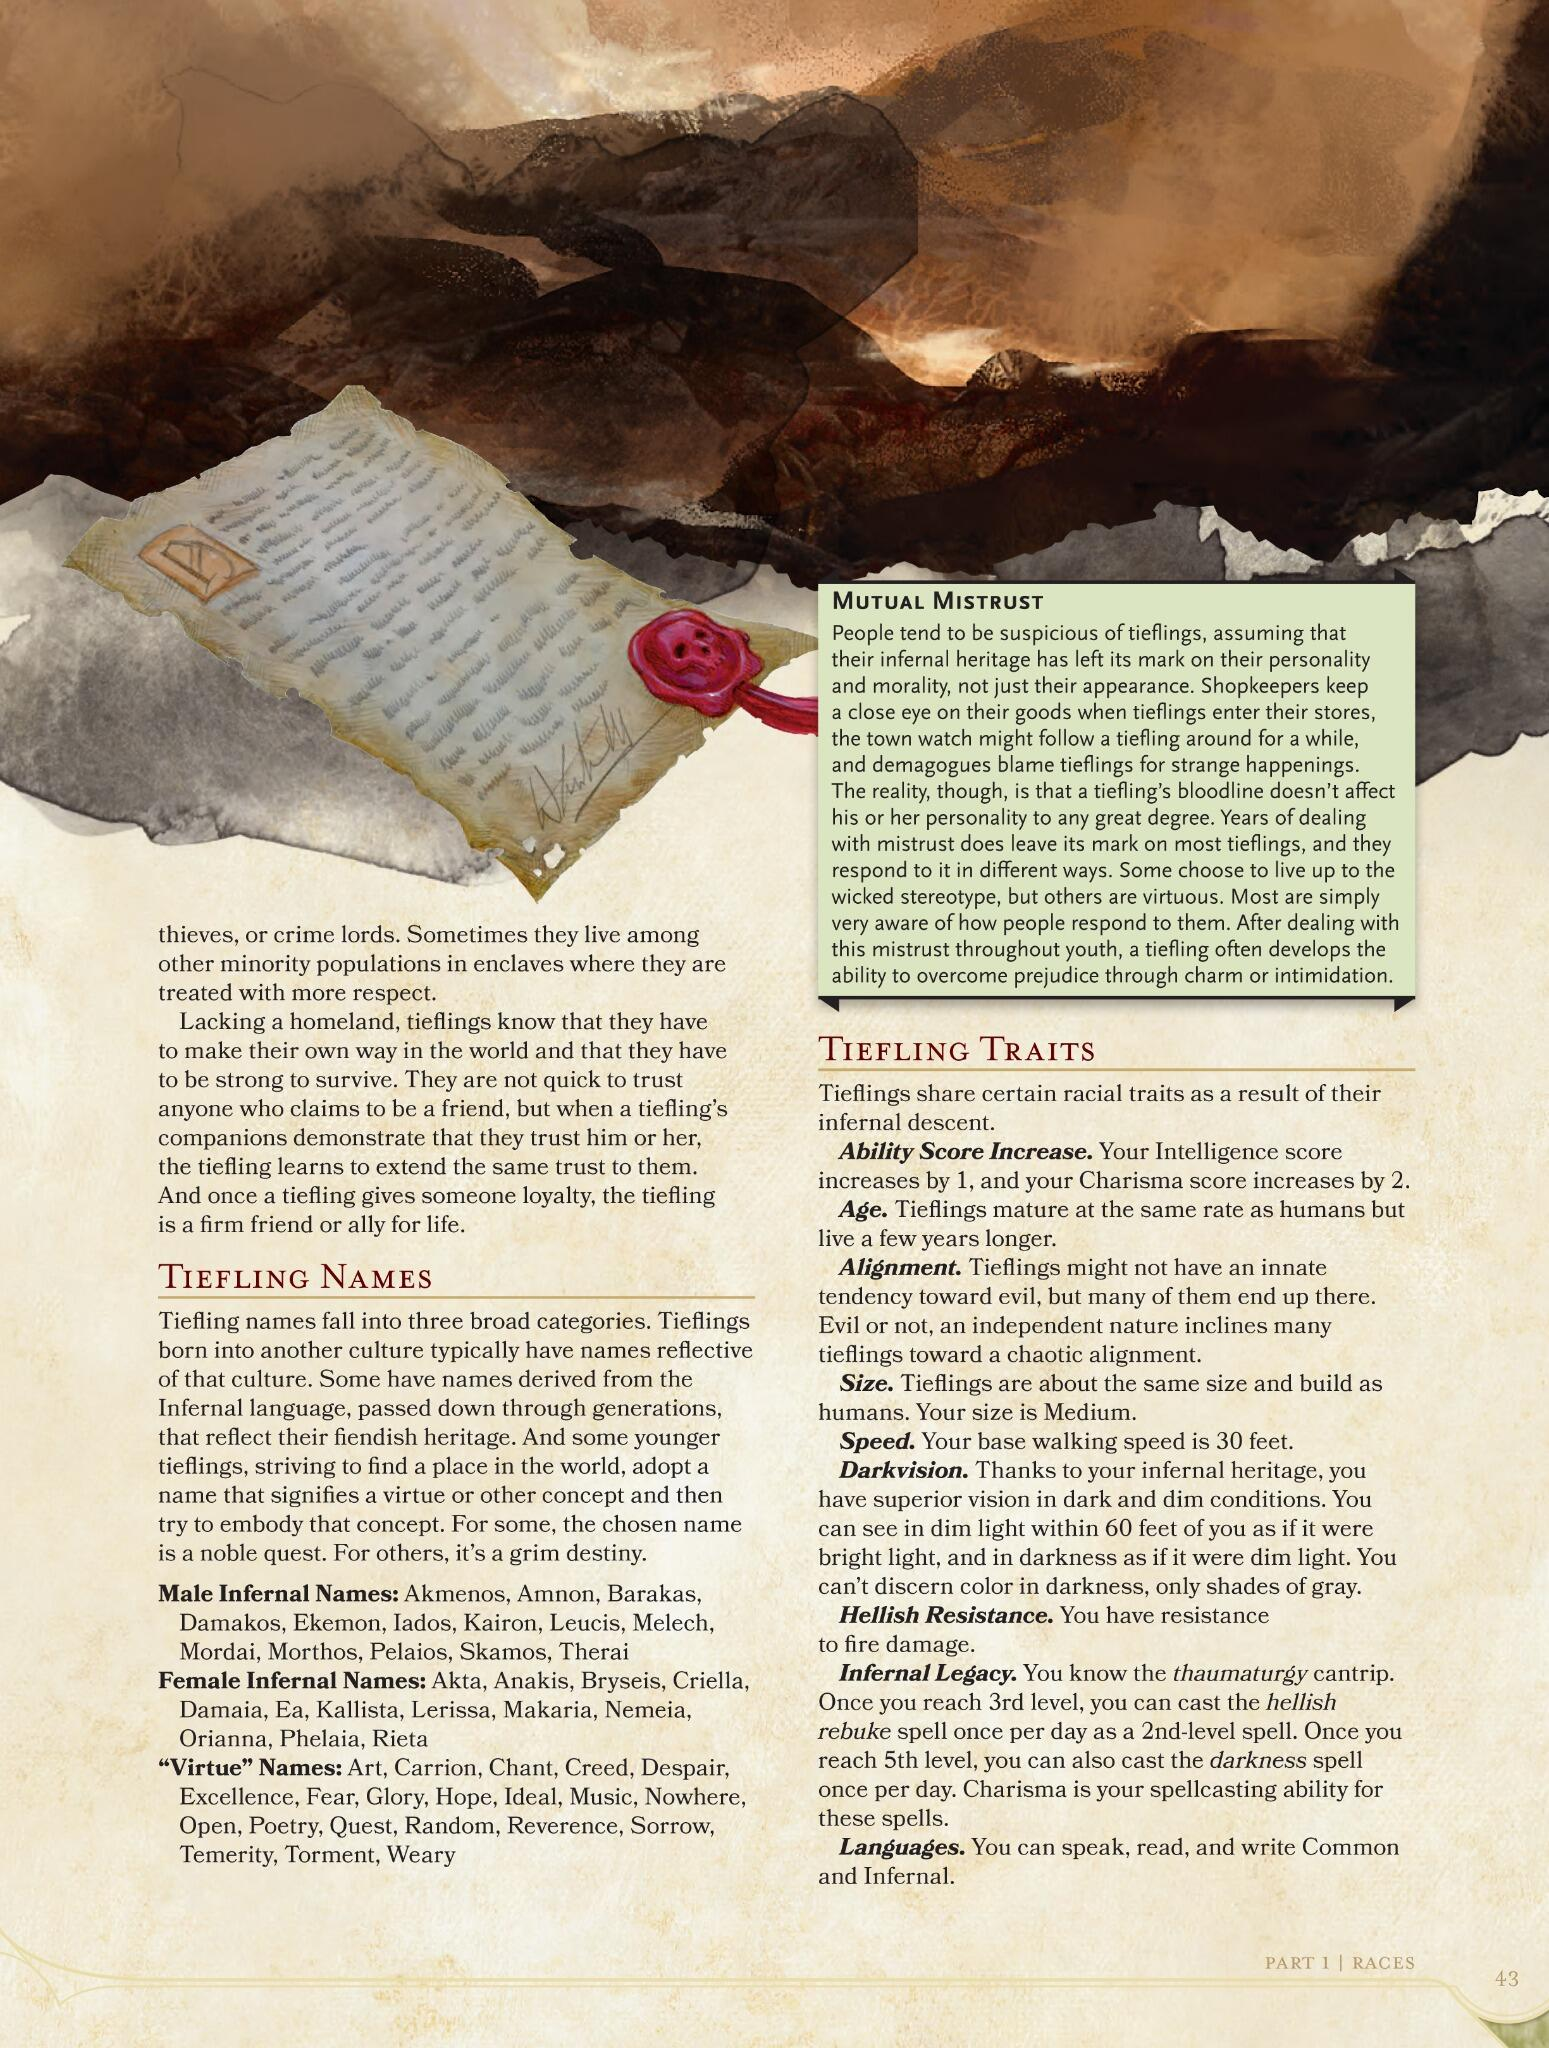 You deserve it - here's the second page of the tiefling entry in the new #DnD Player's Handbook! http://t.co/LLUUC912KK